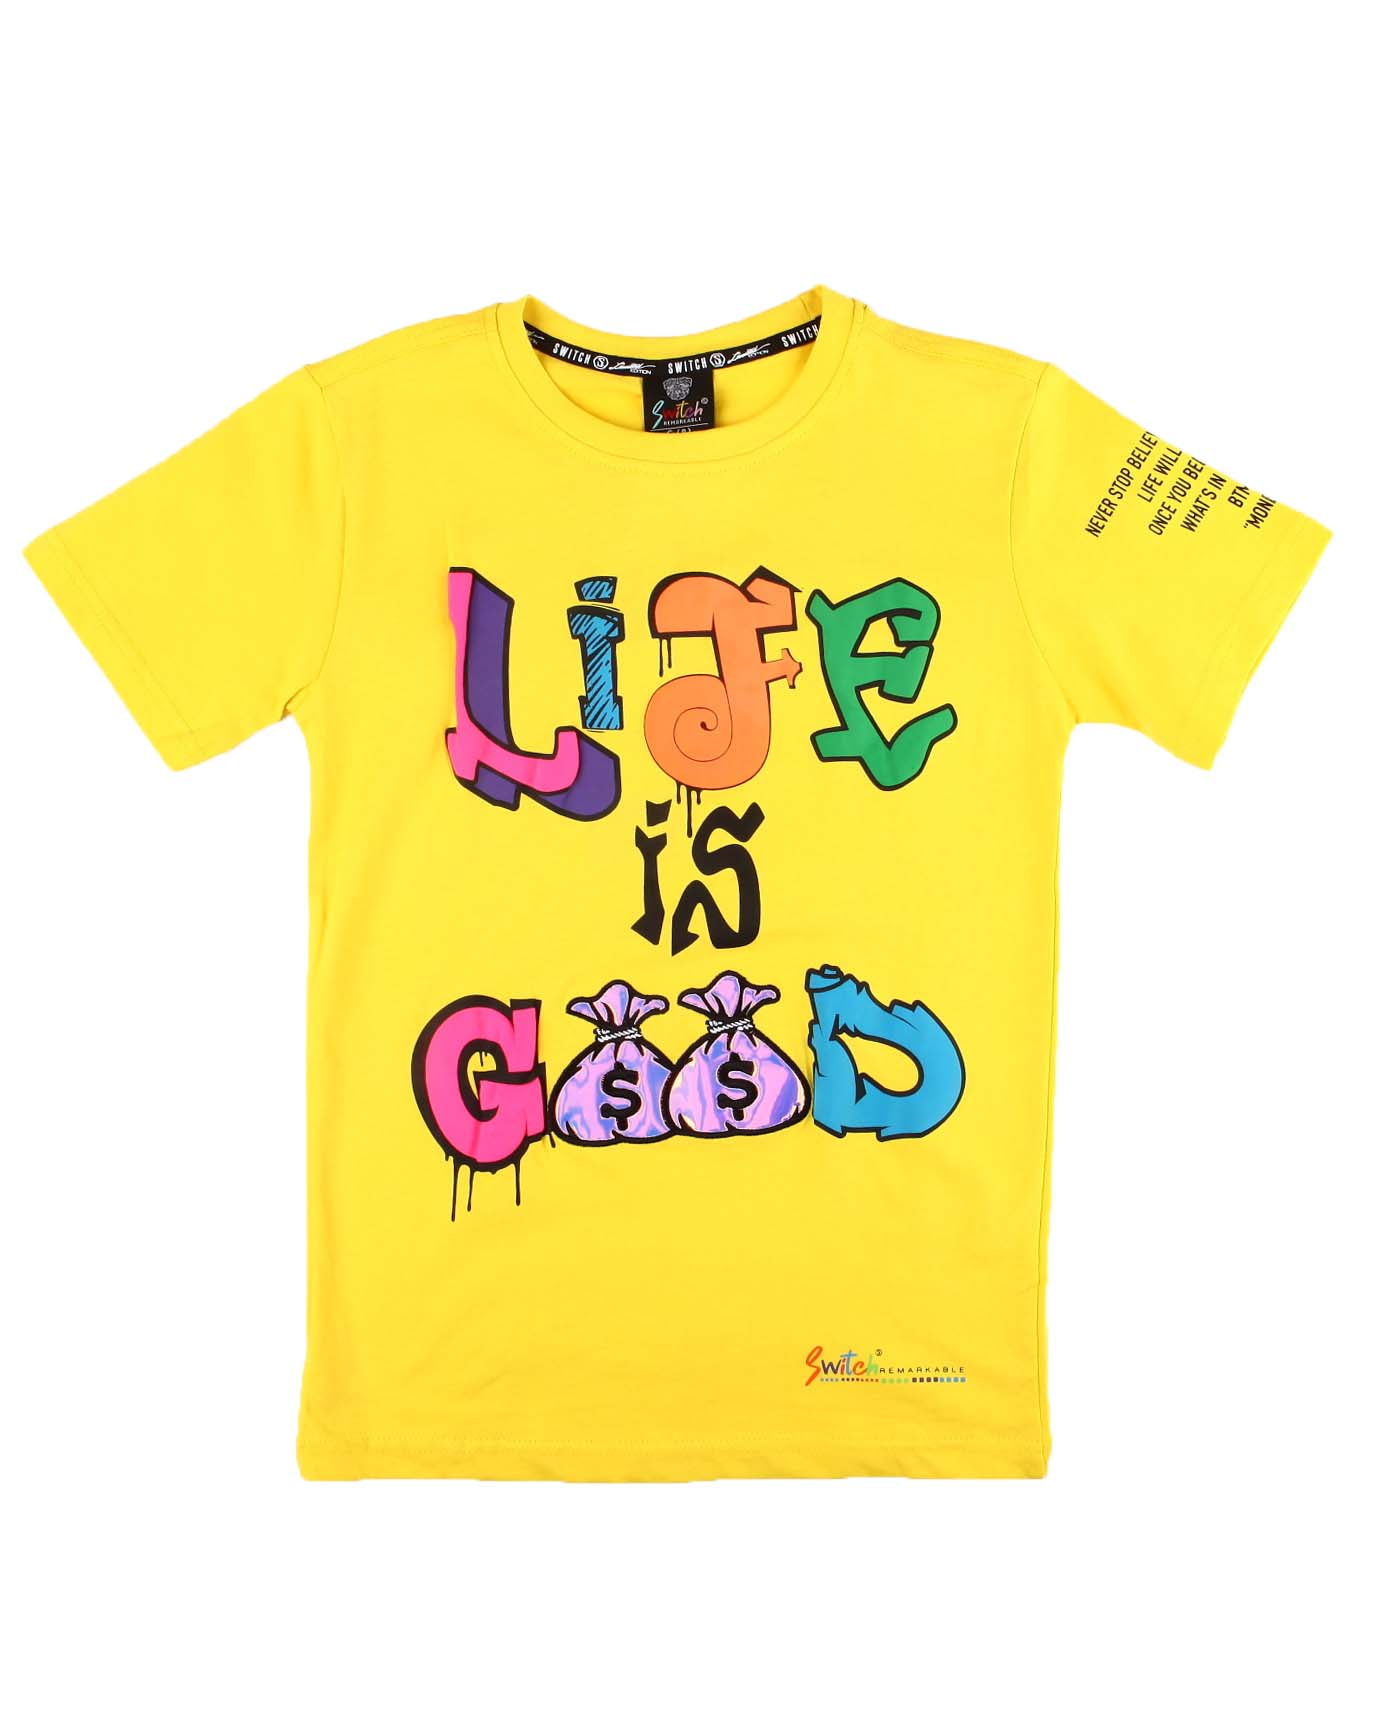 Life is Good Graphic Tee - FLY GUYZ